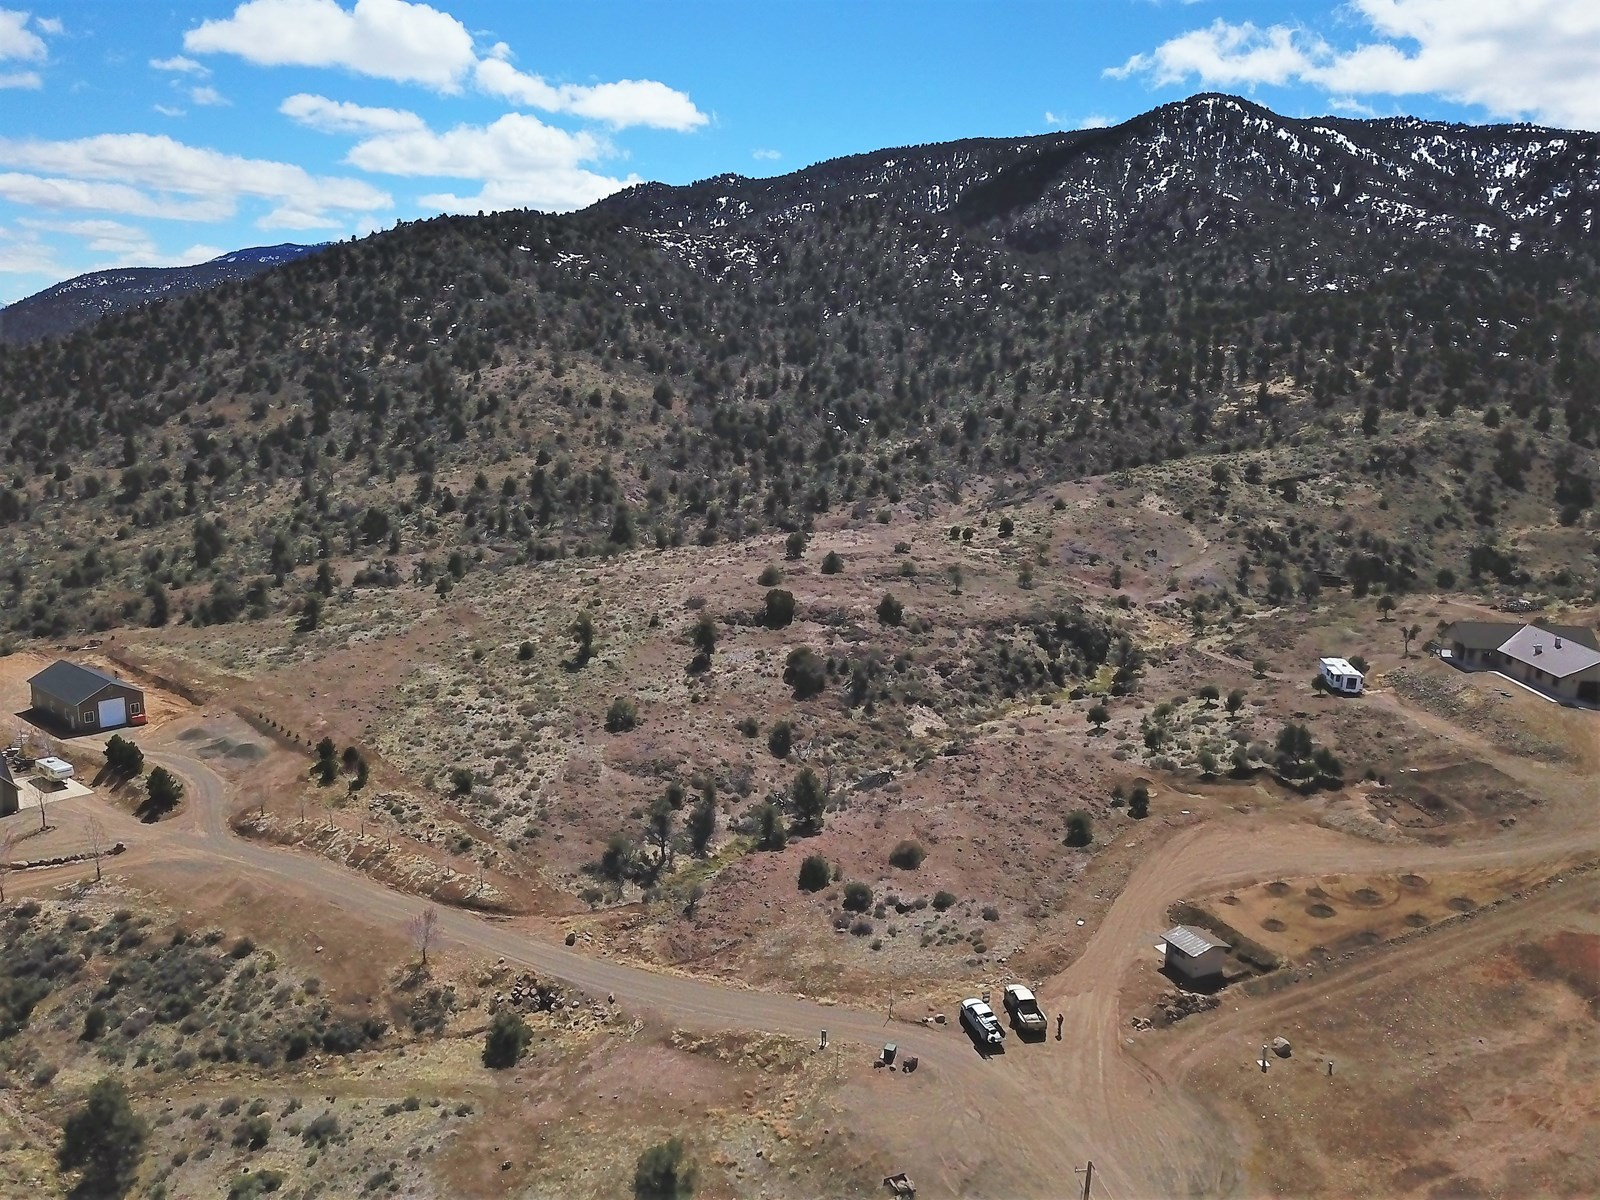 5 Acre Horse Property For Sale South of Gardnerville, Nevada